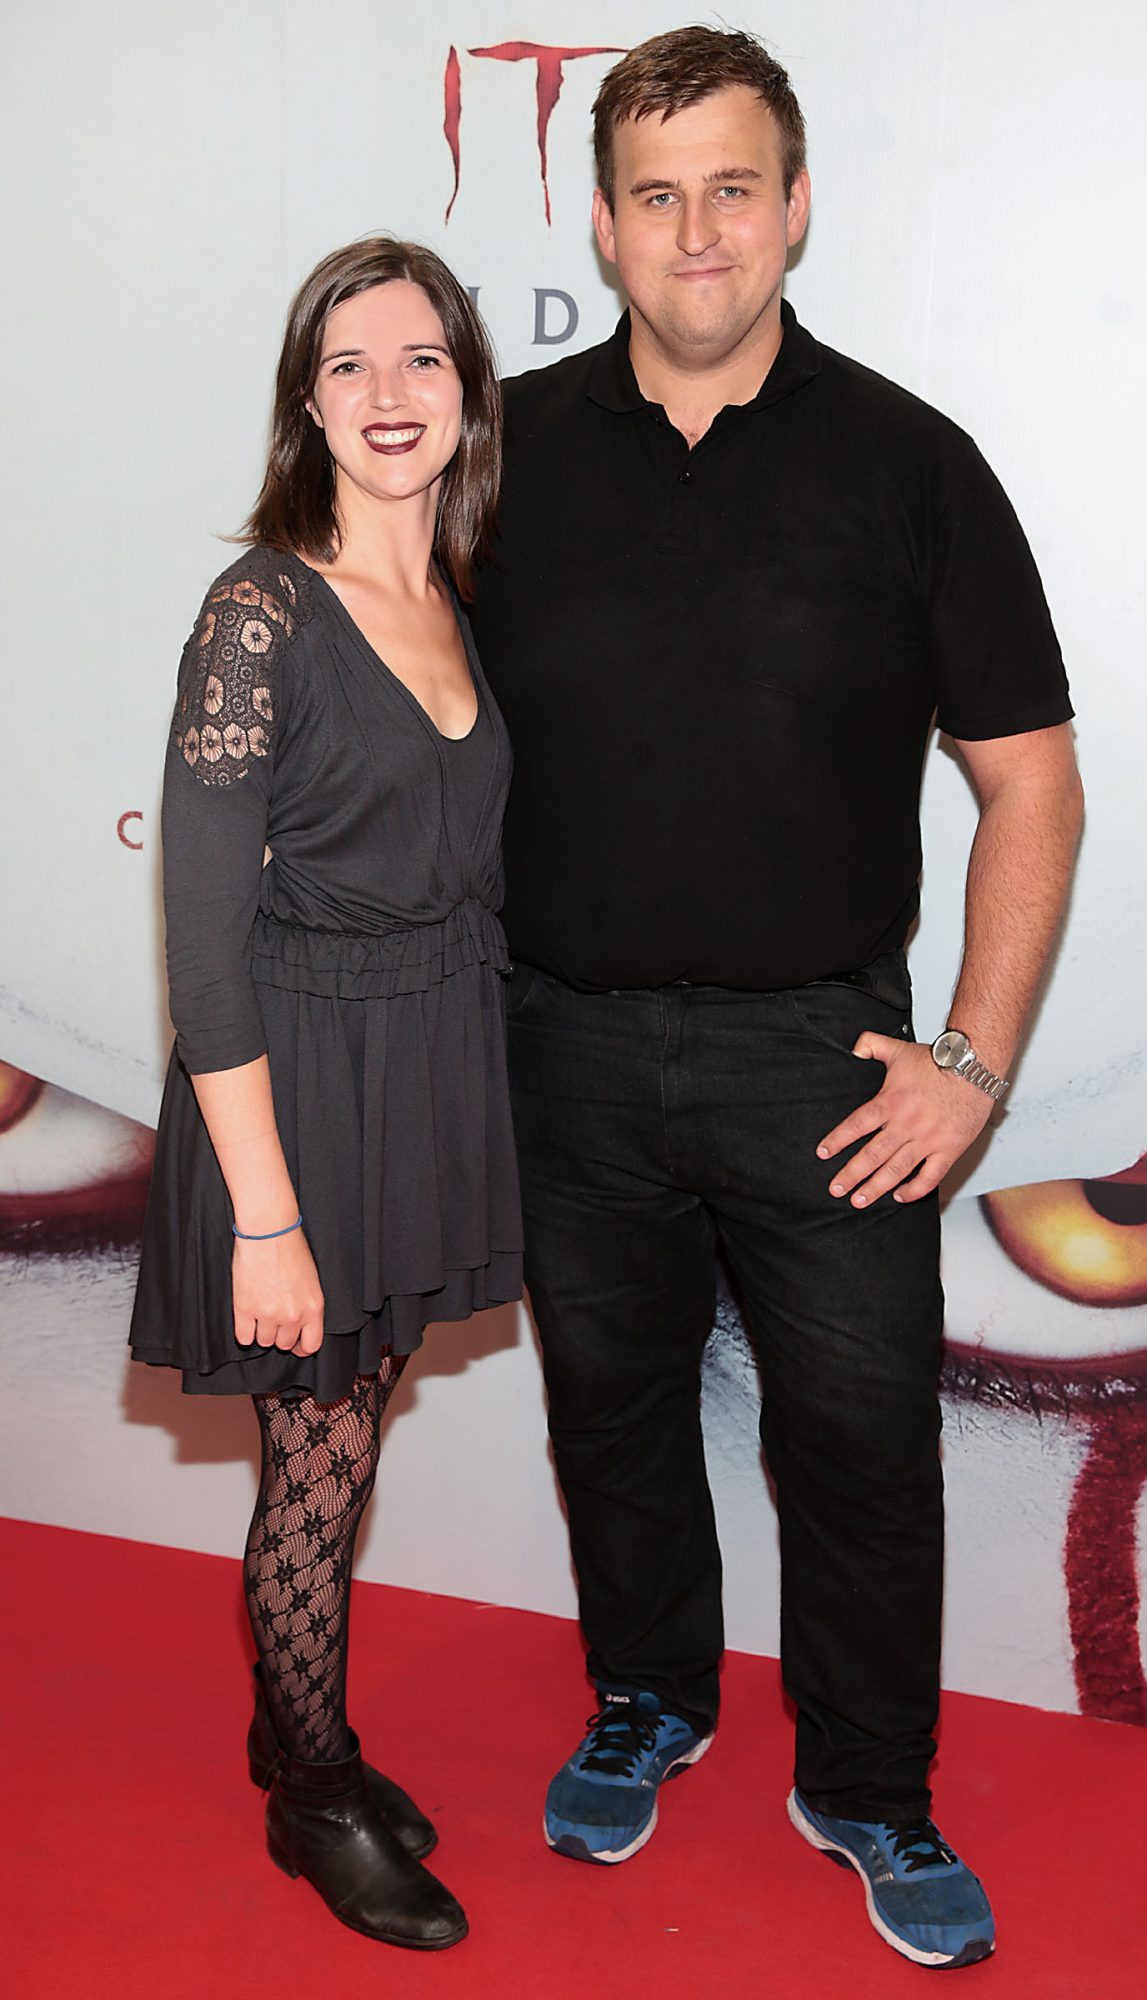 Deirdre Molumby and Ivan Baburin at the Irish premiere of IT Chapter 2 at the Odeon Cinema in Point Square, Dublin.